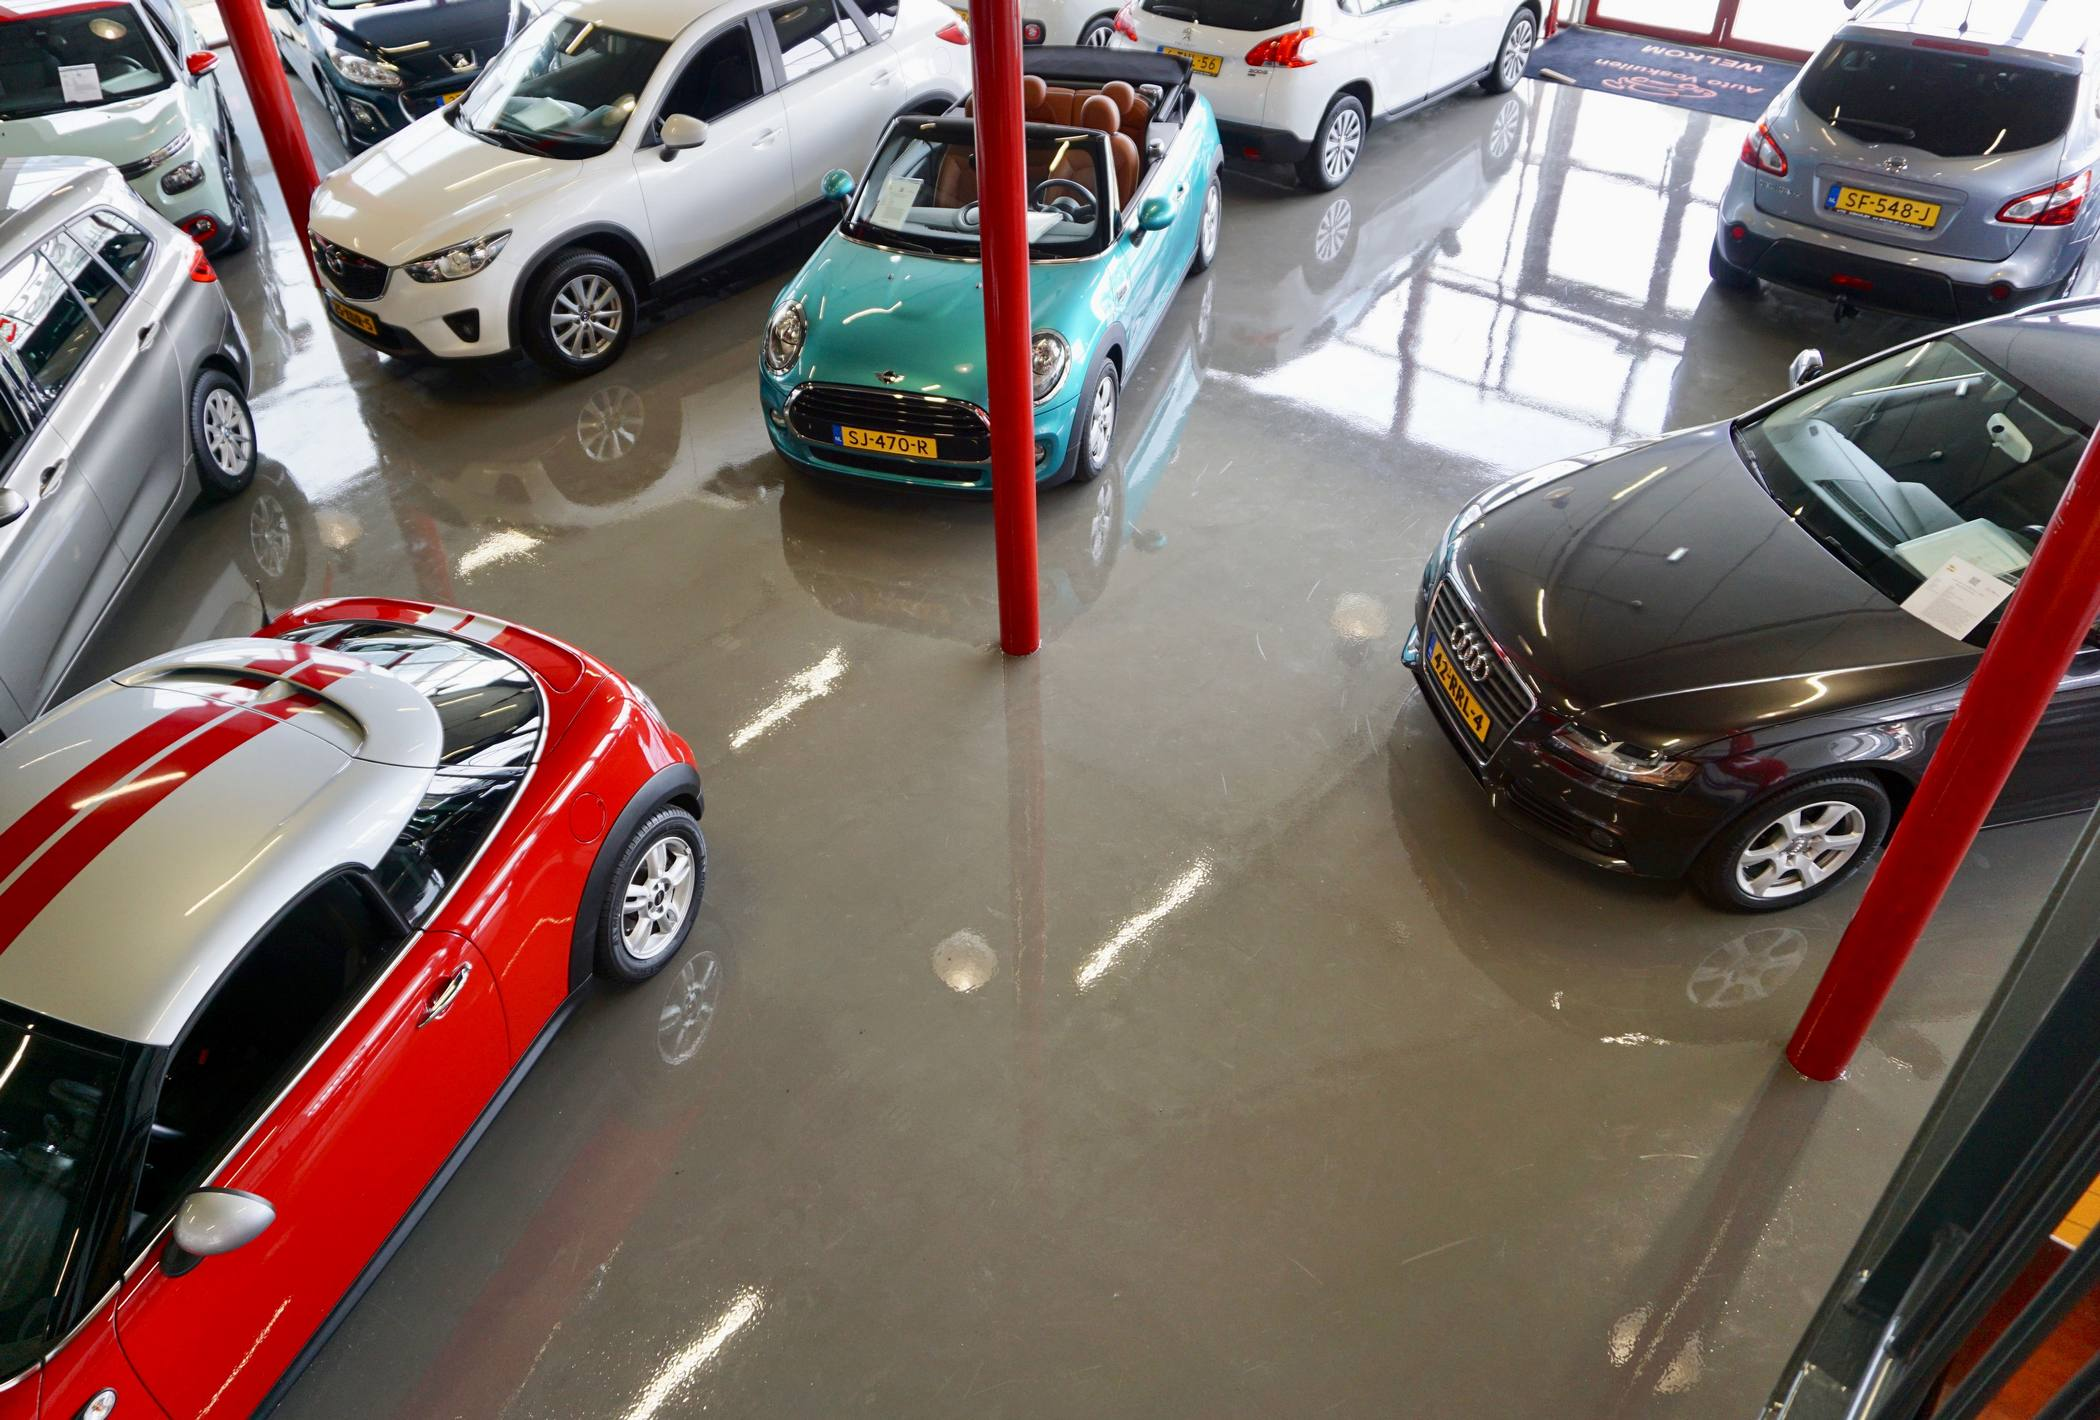 Vloercoating in autoshowroom